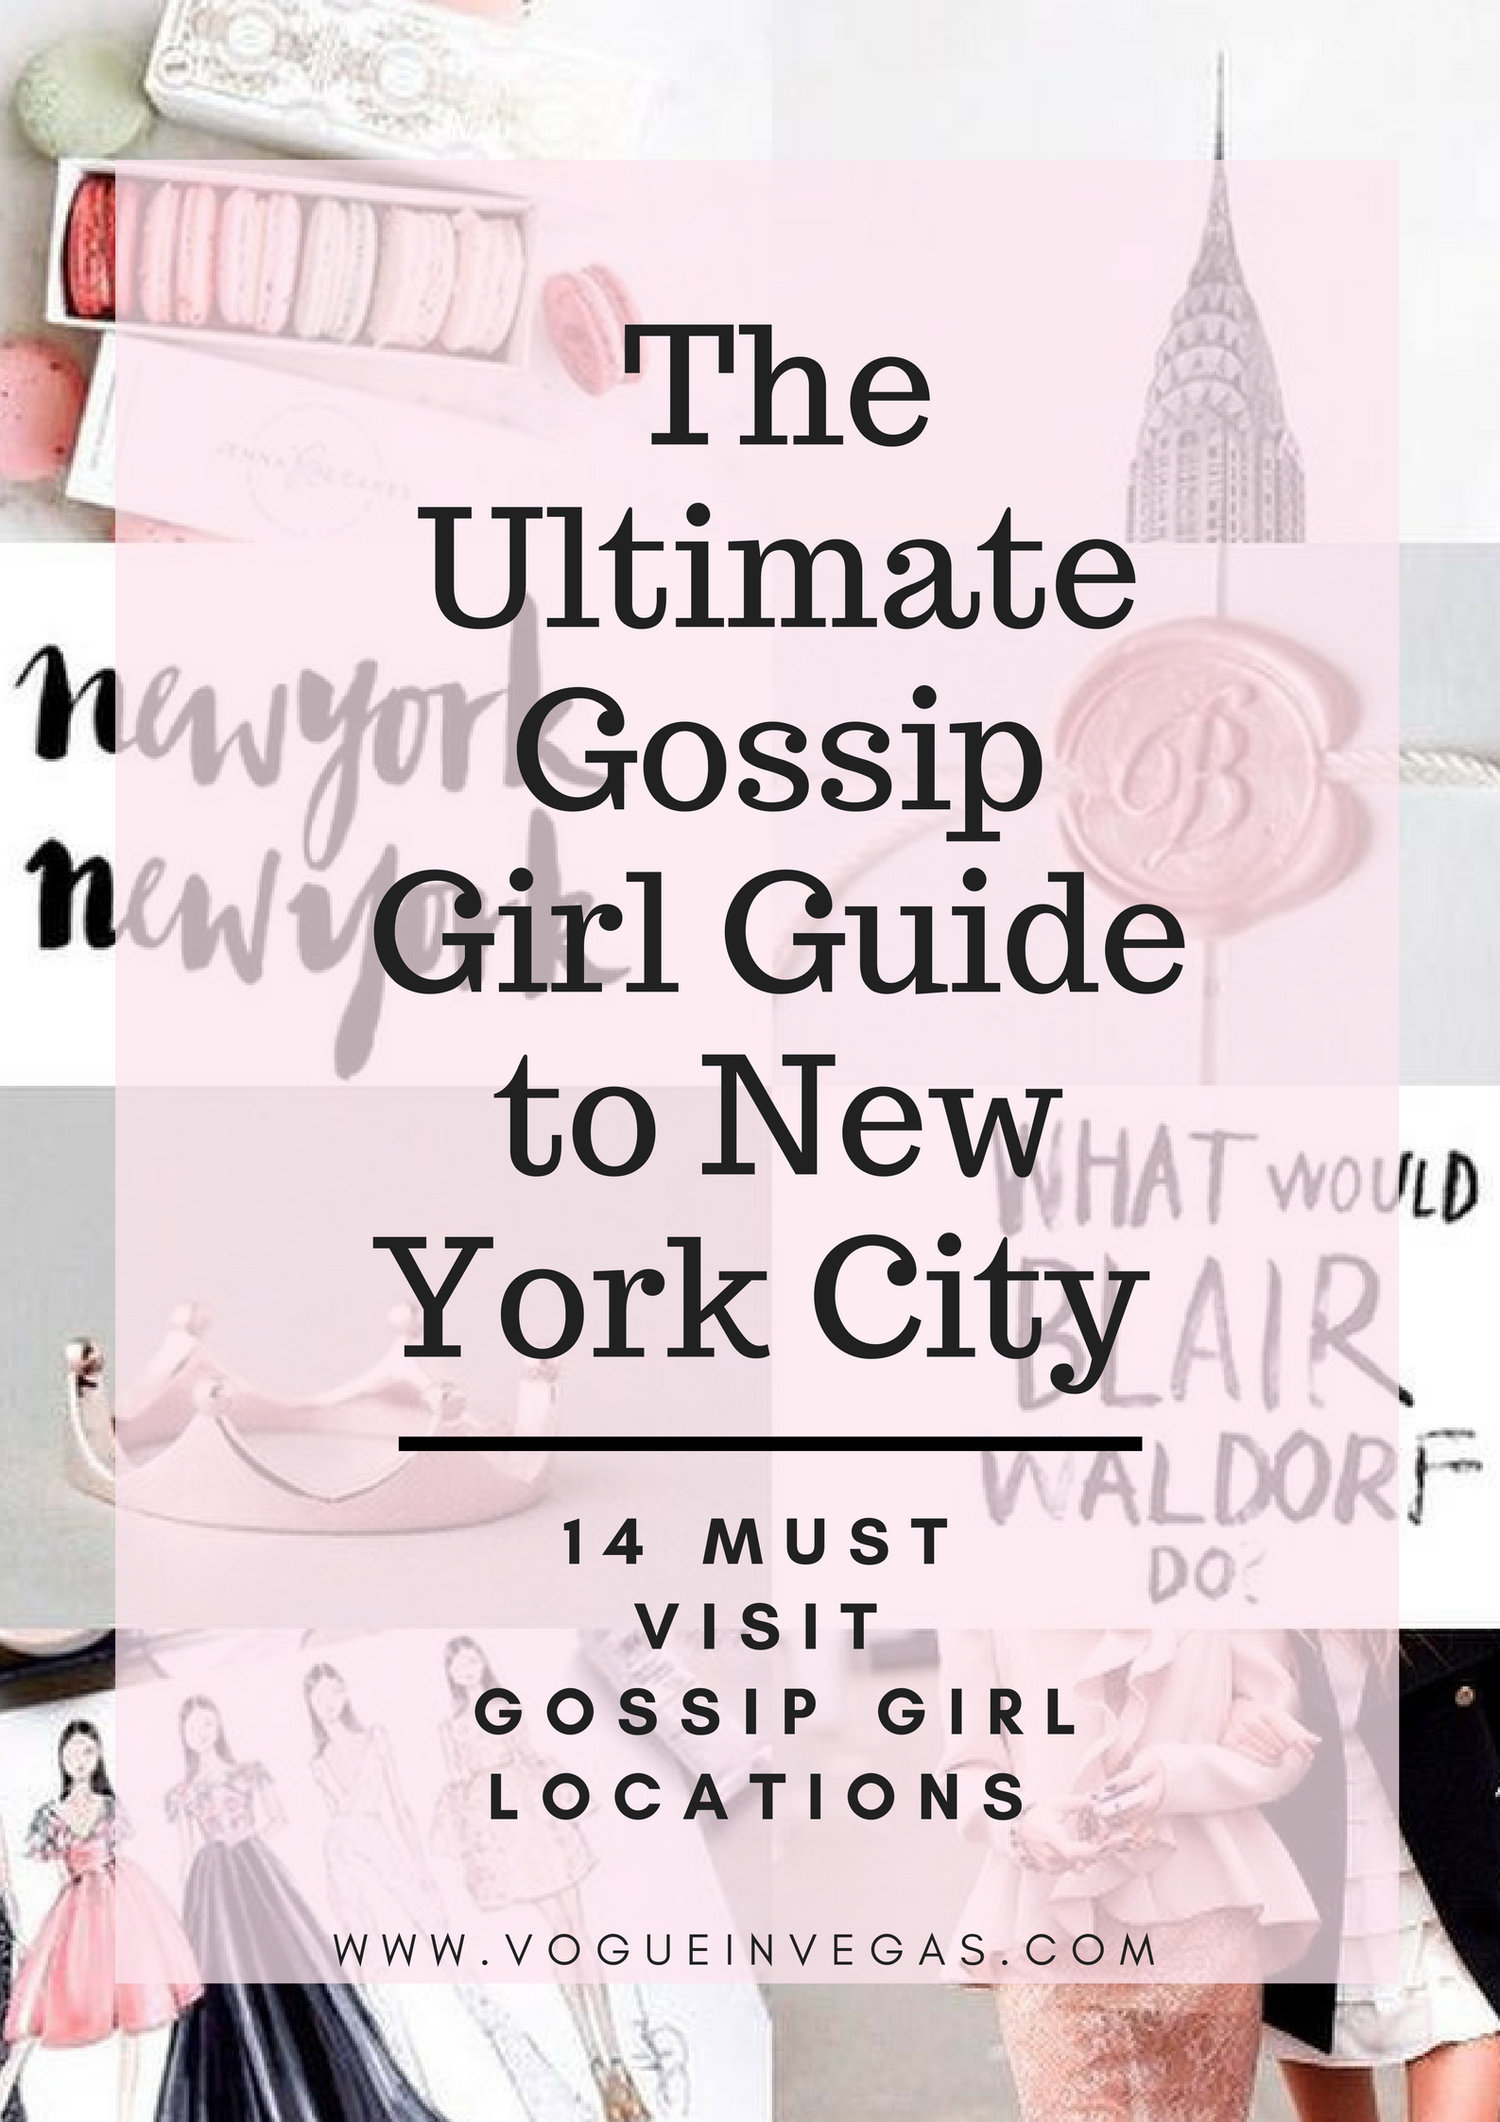 The Ultimate Gossip Girl Guide to NYC: 14 Must Visit